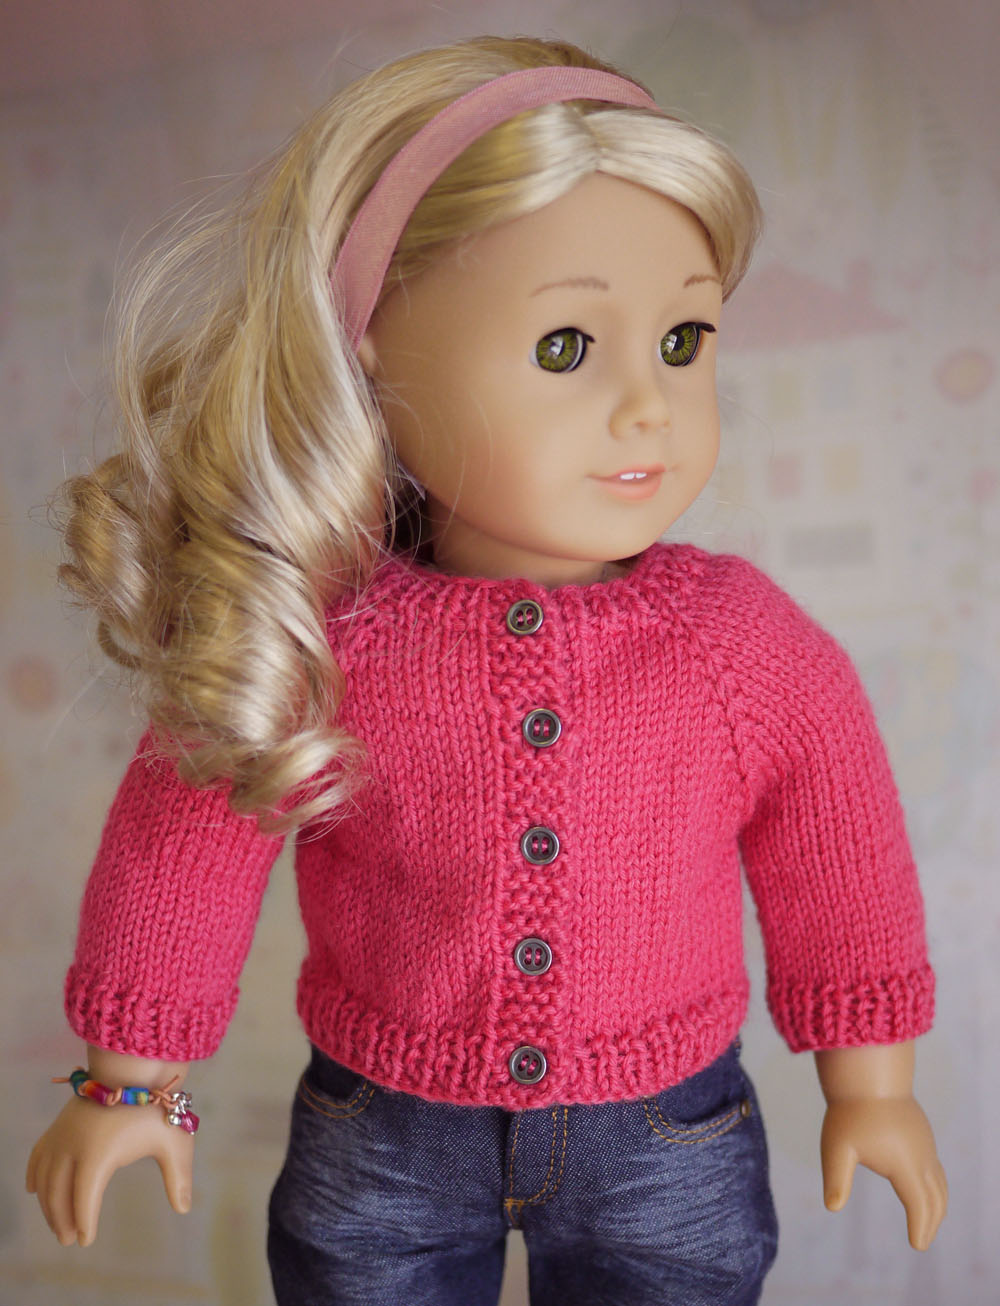 Cardigan Knitting Patterns Free : American Girl Doll Cardigan Sweater Knitting Pattern Cindy Rice Designs